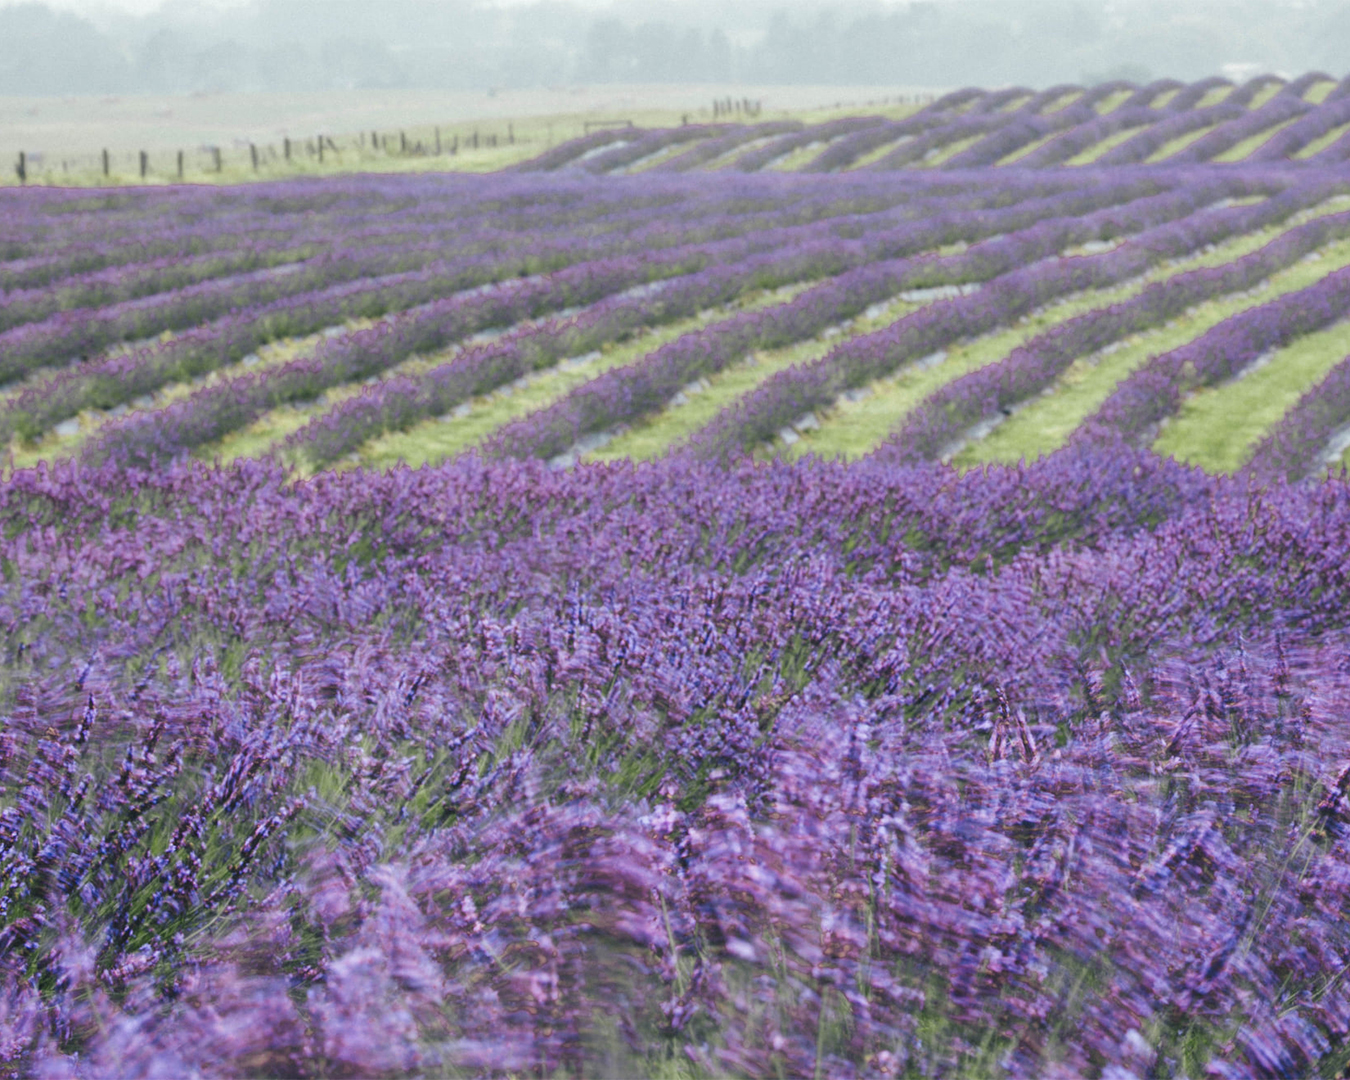 Rows upon rows of lovely lavender stretches into the distance.